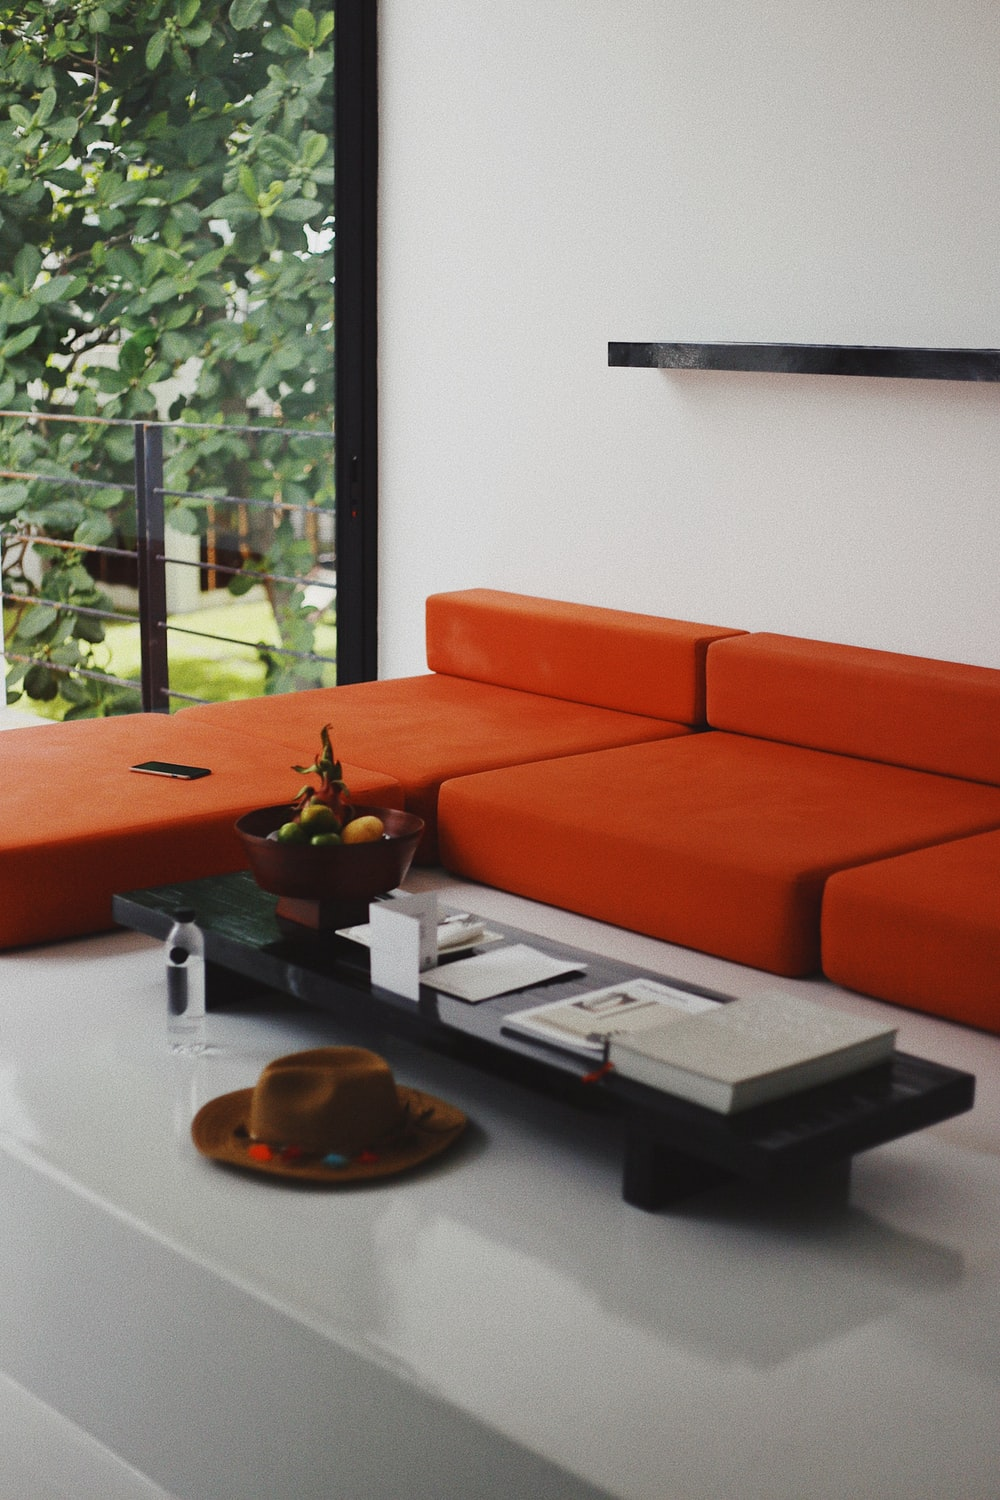 coffee table in front of orange fabric sectional sofa